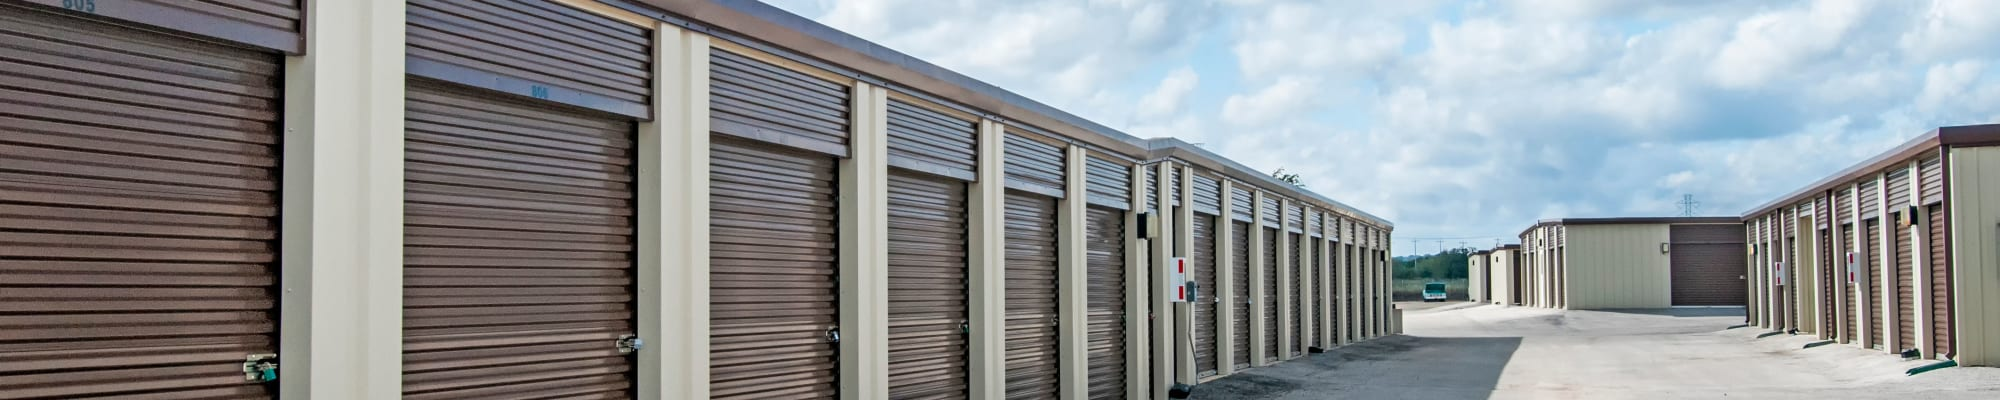 Features at Lockaway Storage in San Antonio, Texas